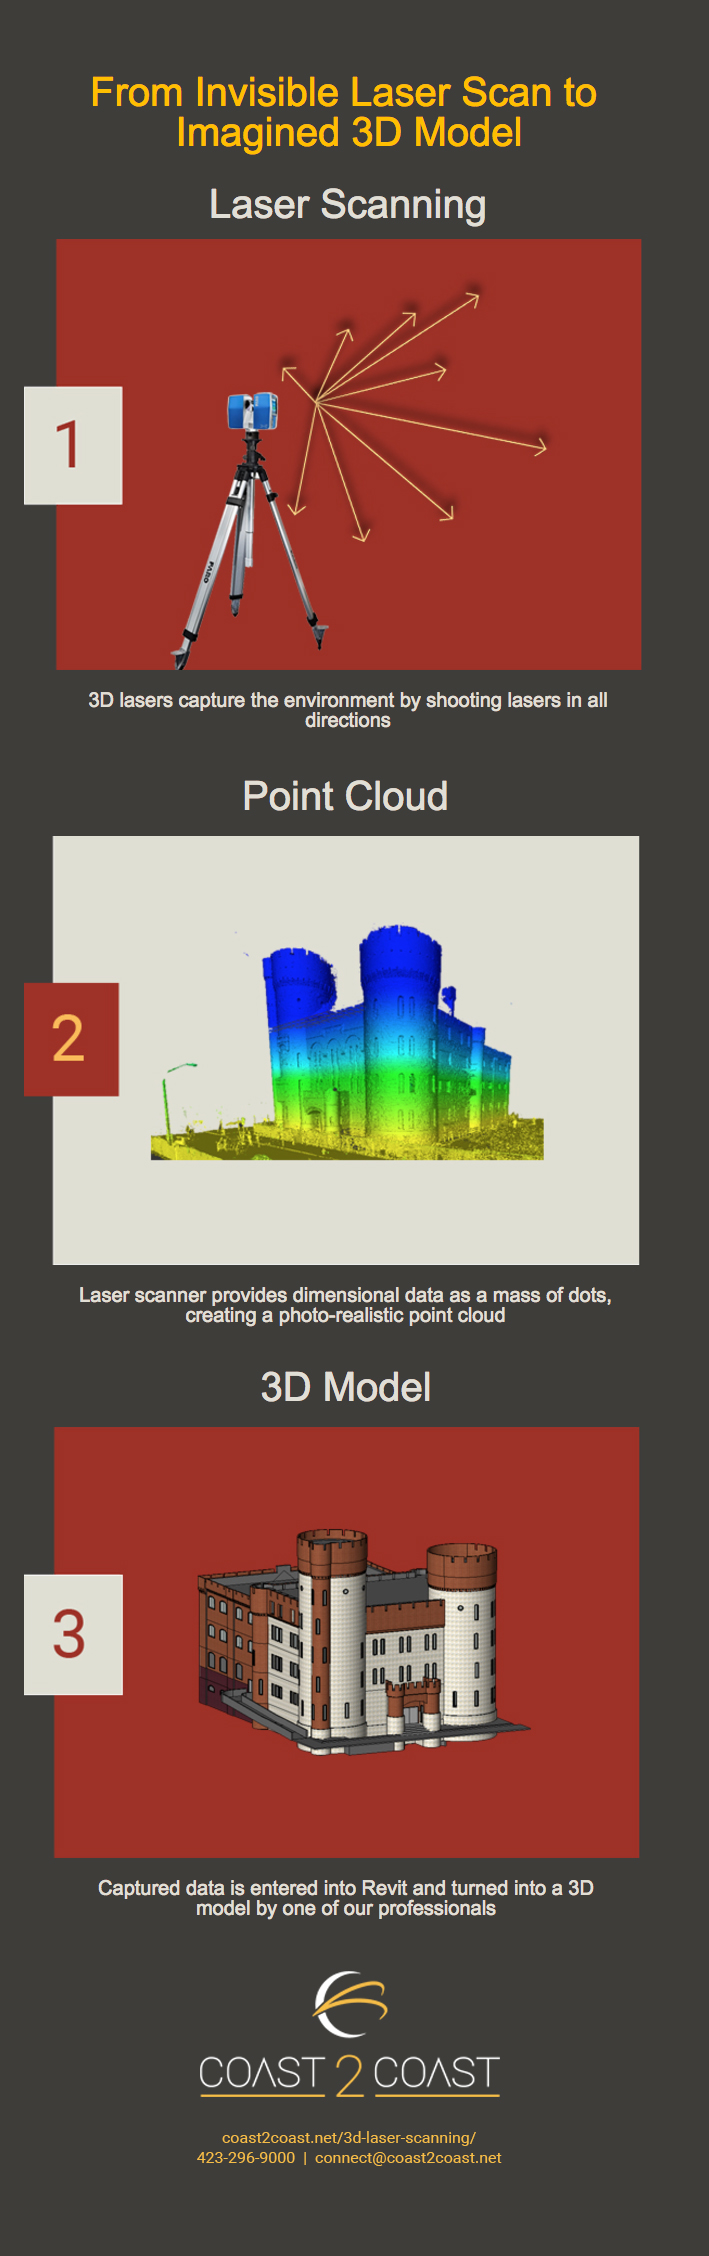 Laser Scan to Imagined 3D Model - See How | Coast 2 Coast